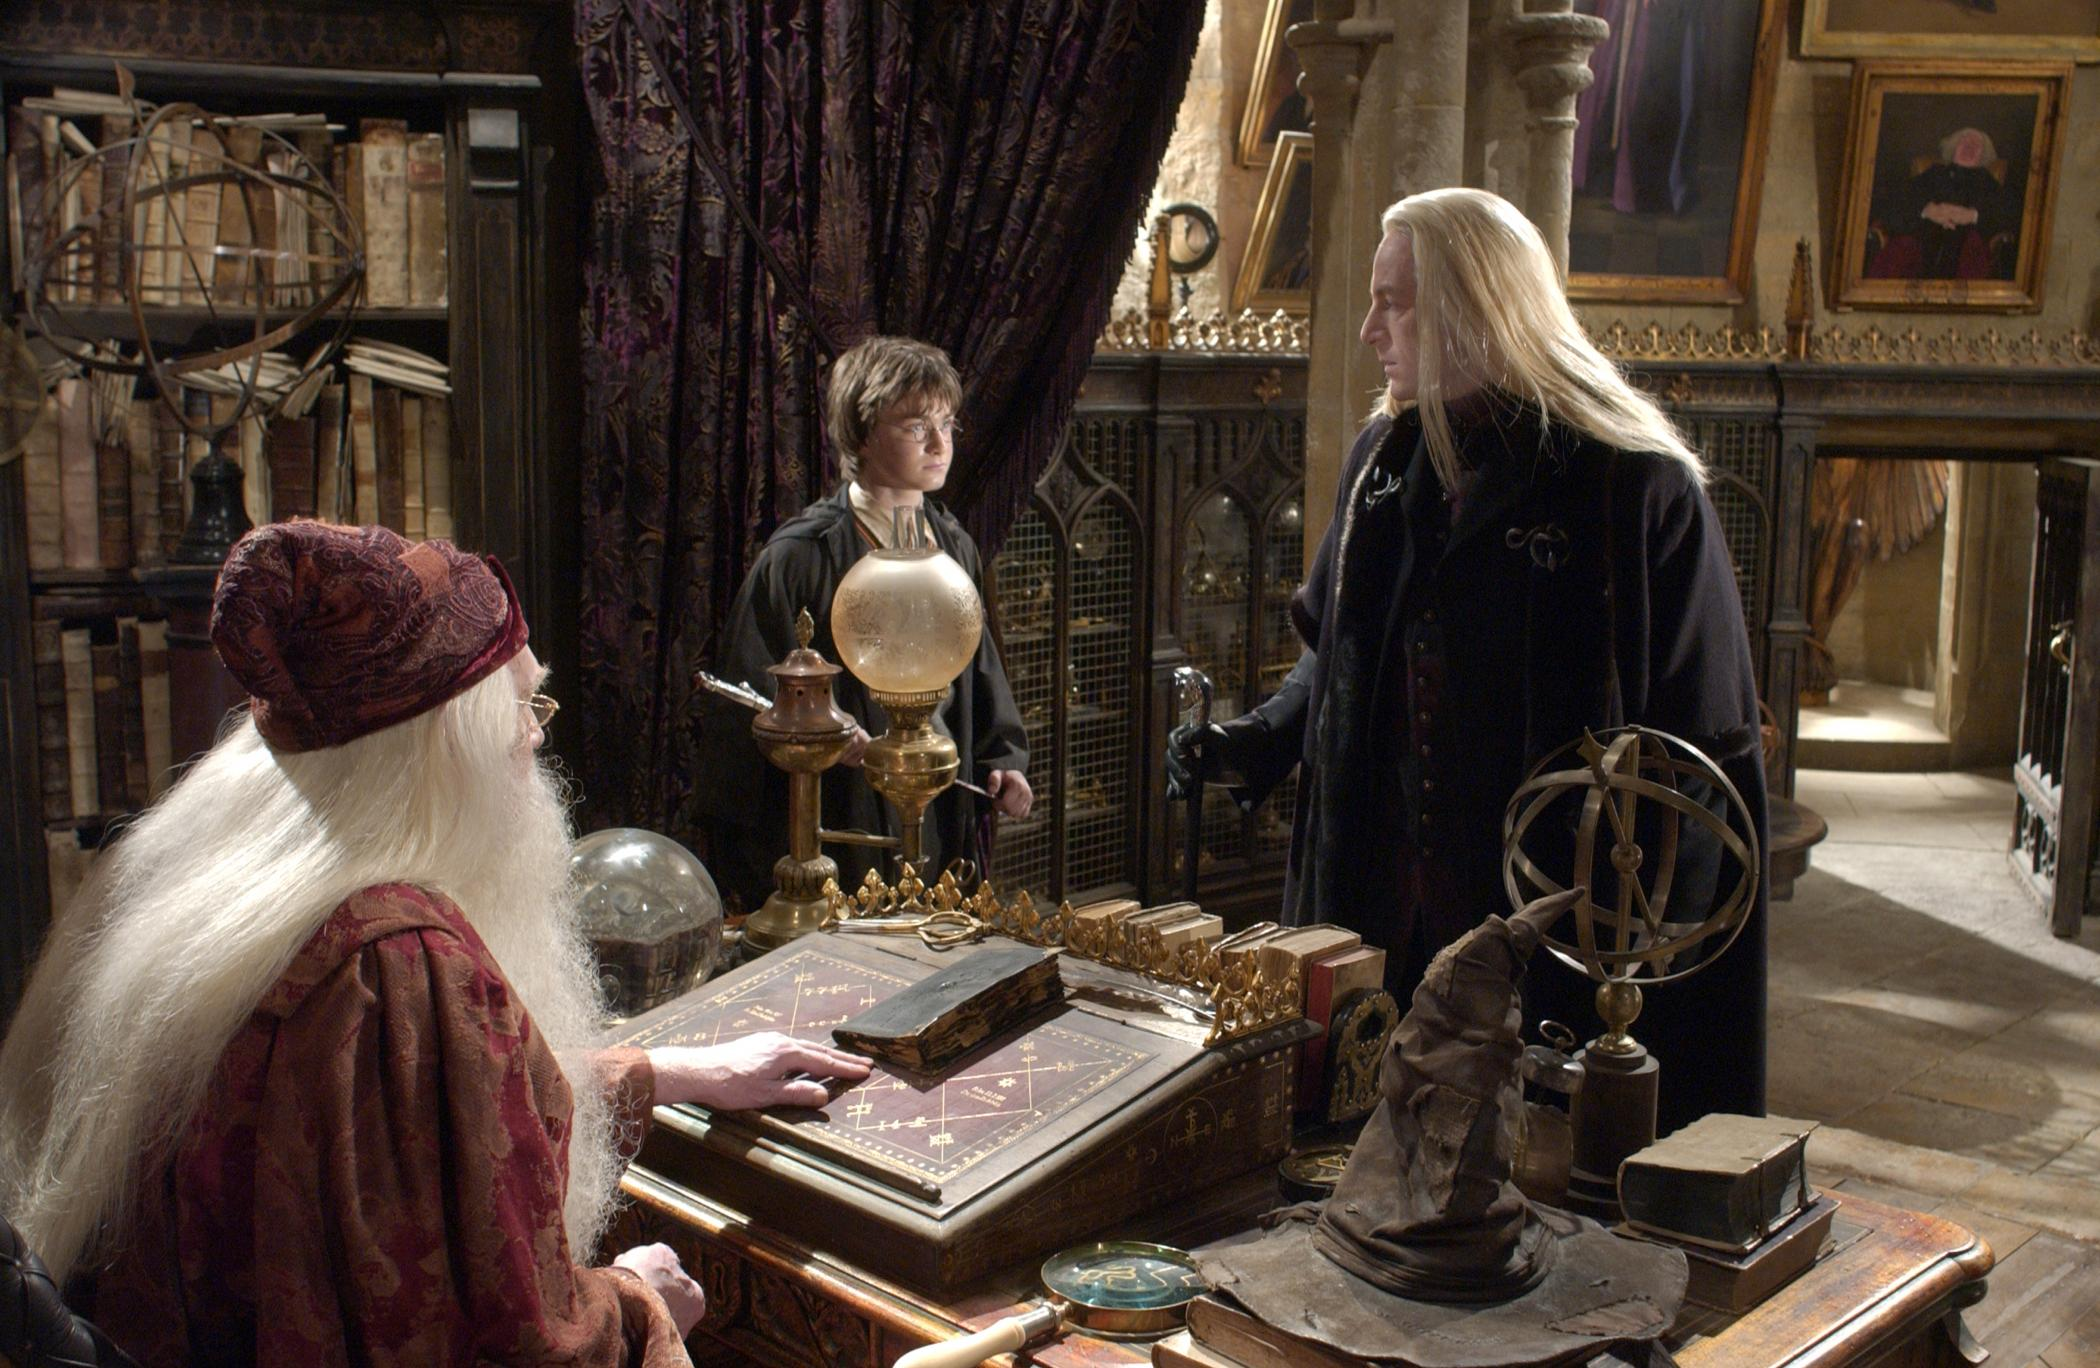 Harry potter and the chamber of secrets movie photo gallery gabtor 39 s weblog - Harry potter chambre secrets streaming ...